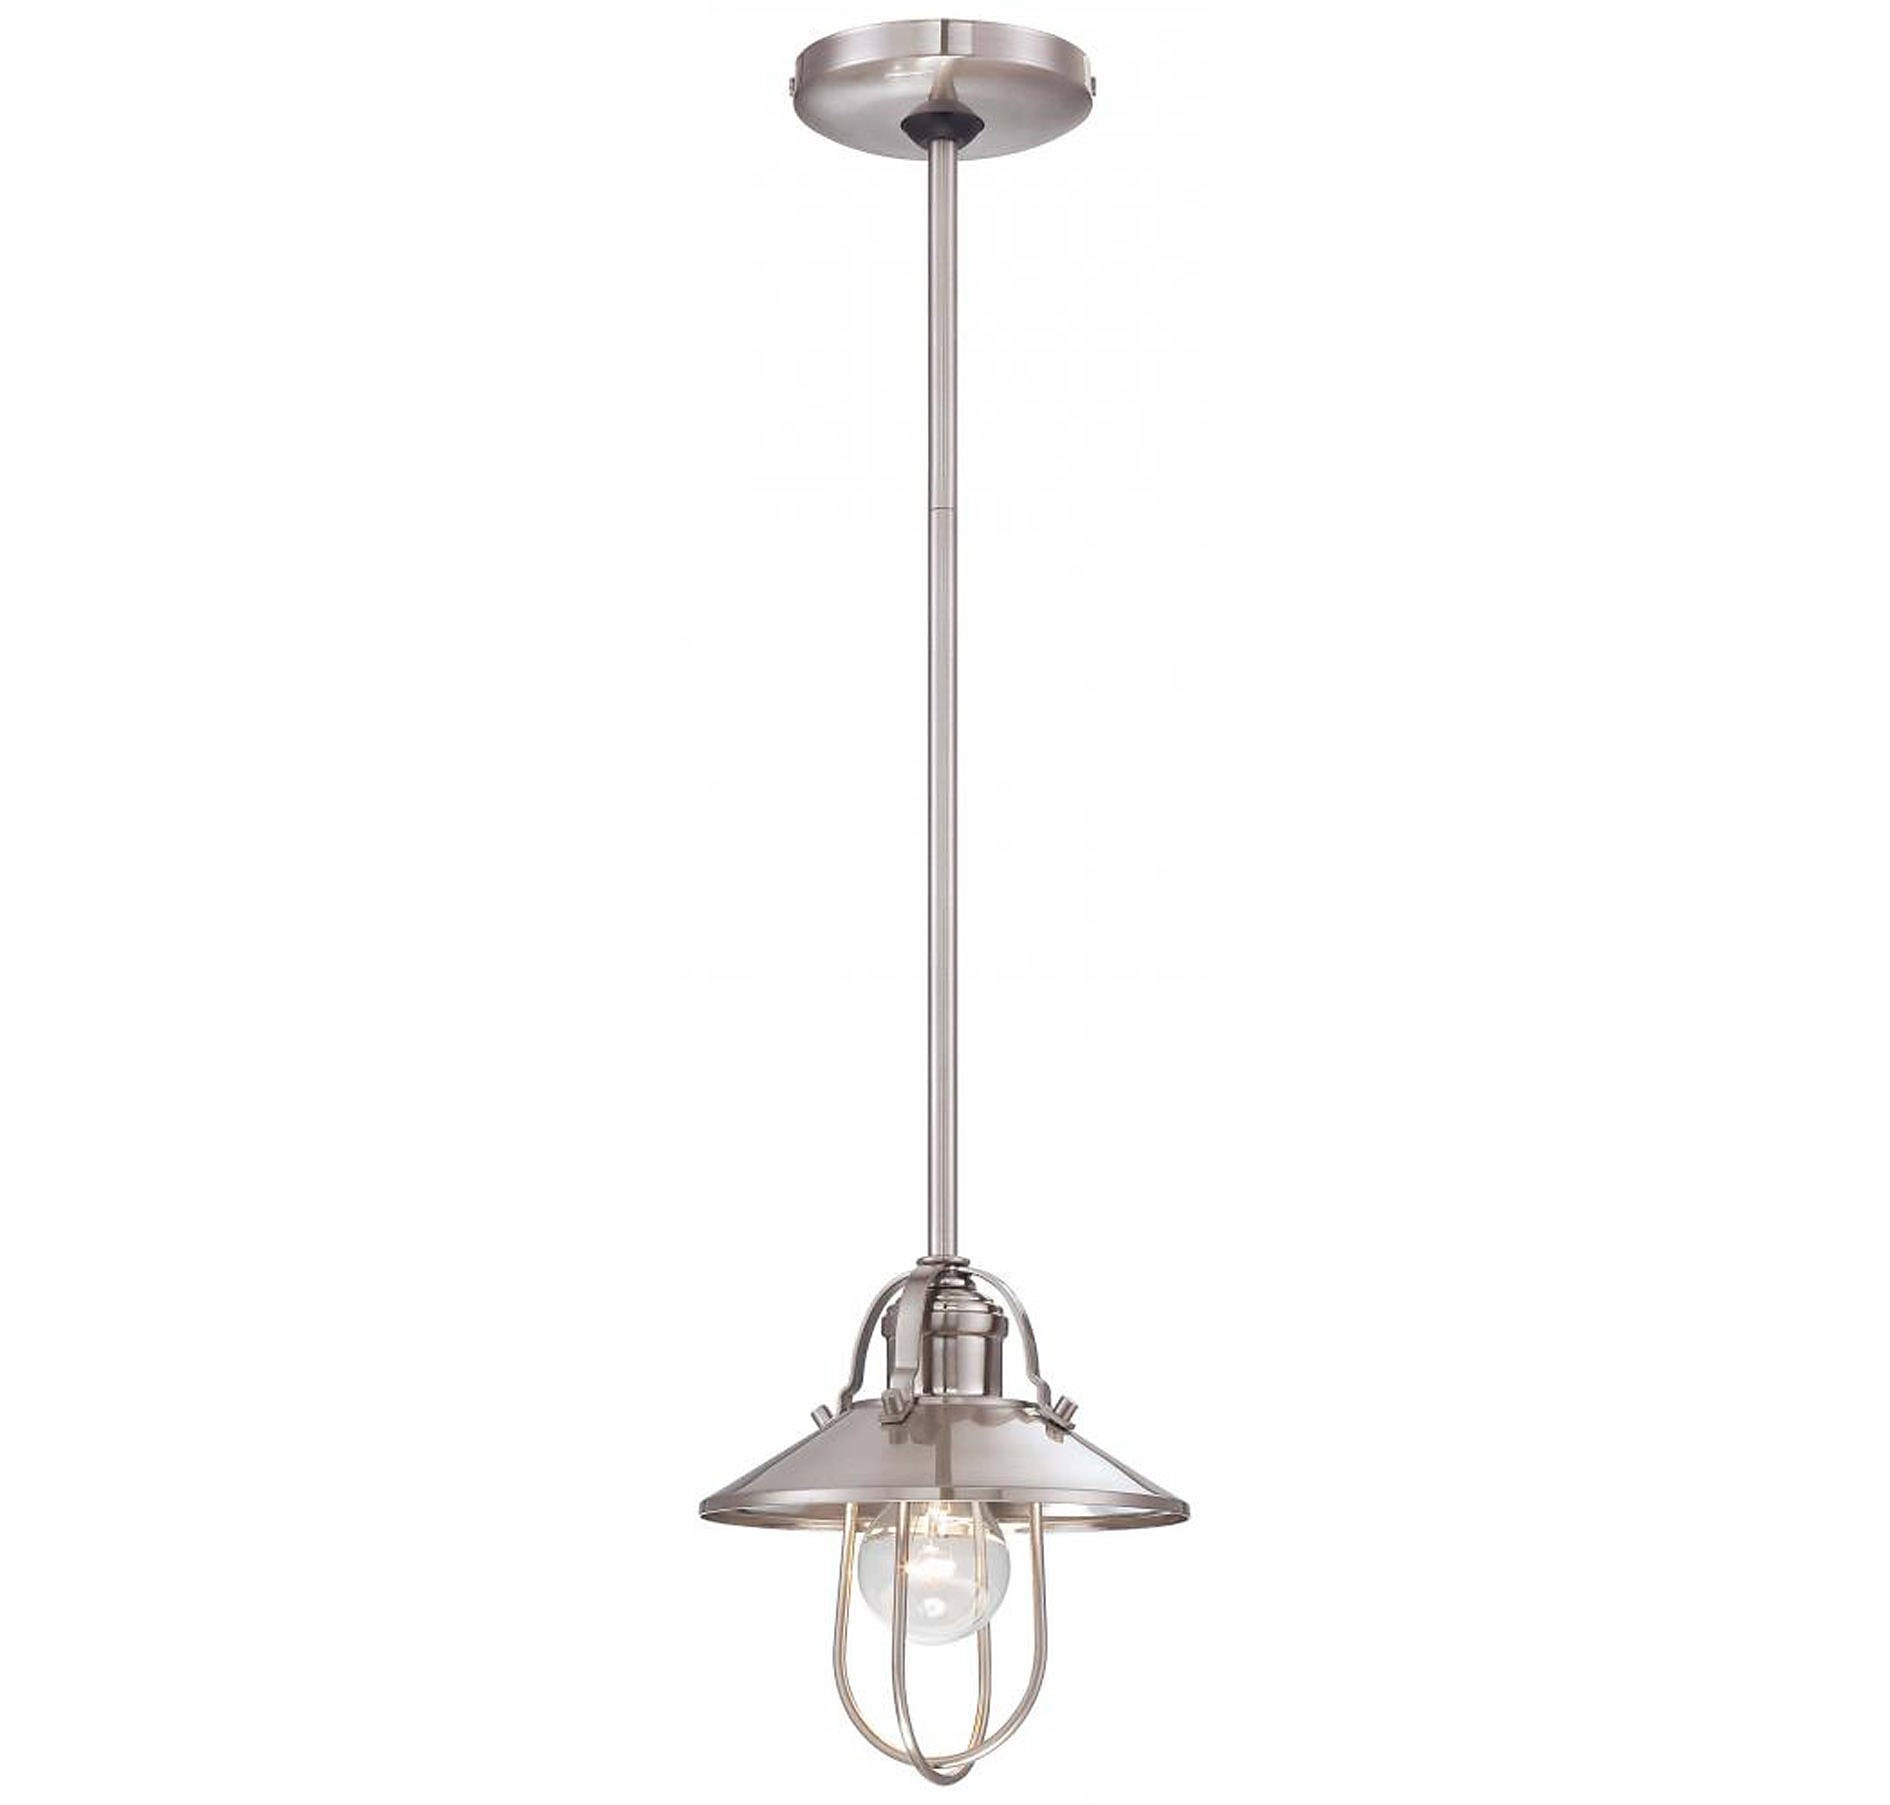 Minka Lavery 2250-84 8'' One Light Pendant, Brushed Nickel Finish with Brushed Nickel Glass with Steel Shade